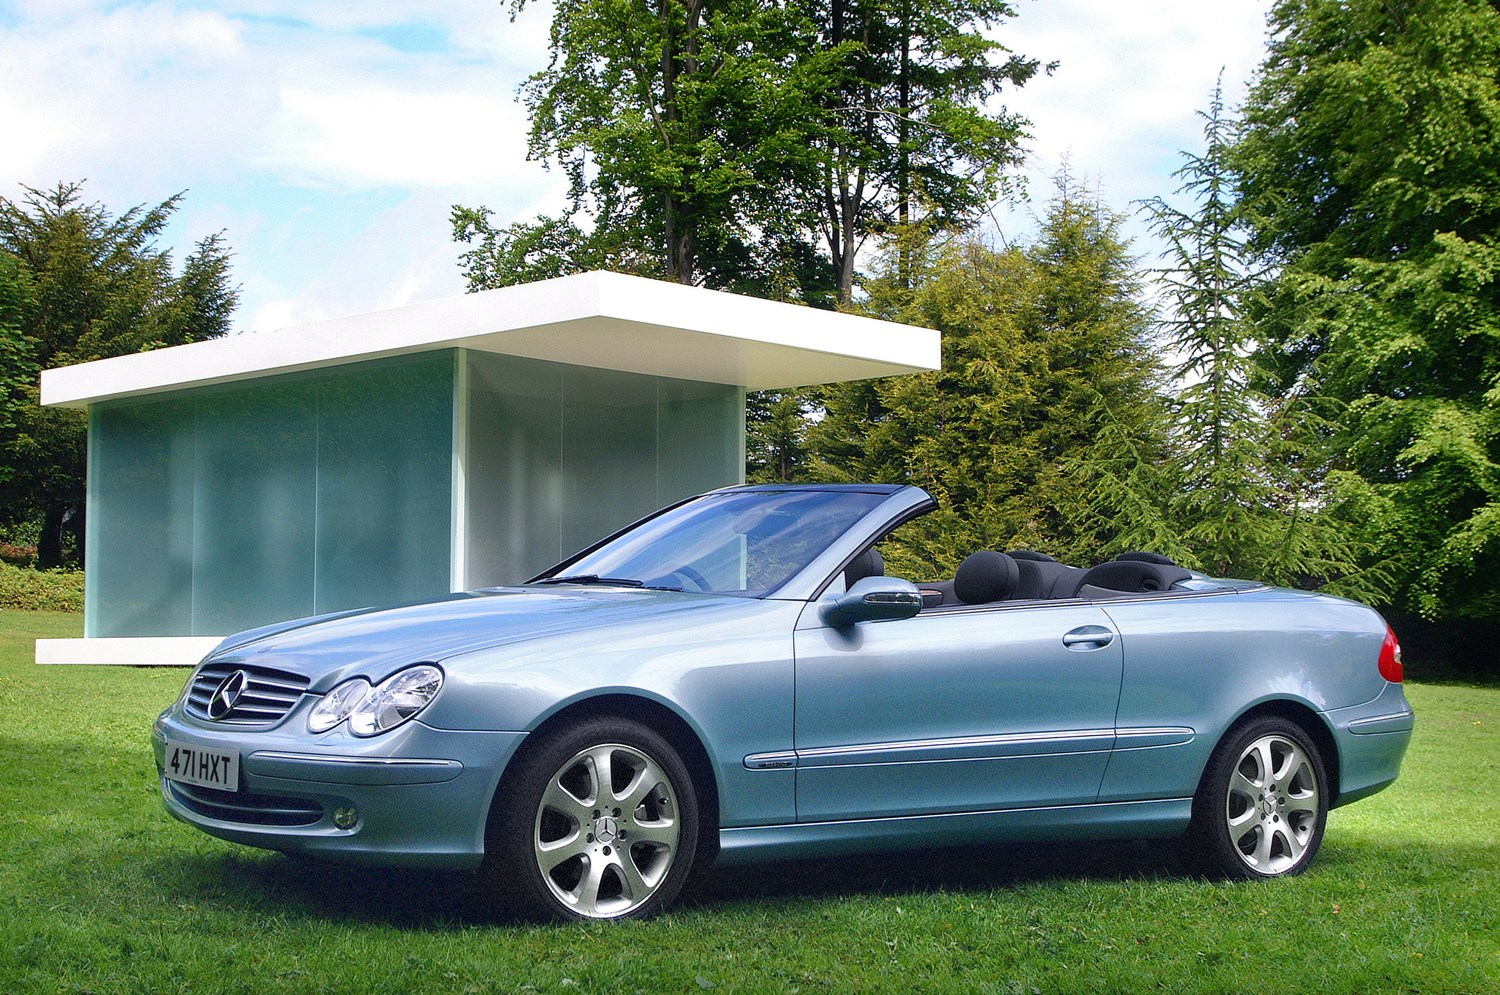 mercedes benz clk cabriolet review 2003 2009 parkers. Black Bedroom Furniture Sets. Home Design Ideas